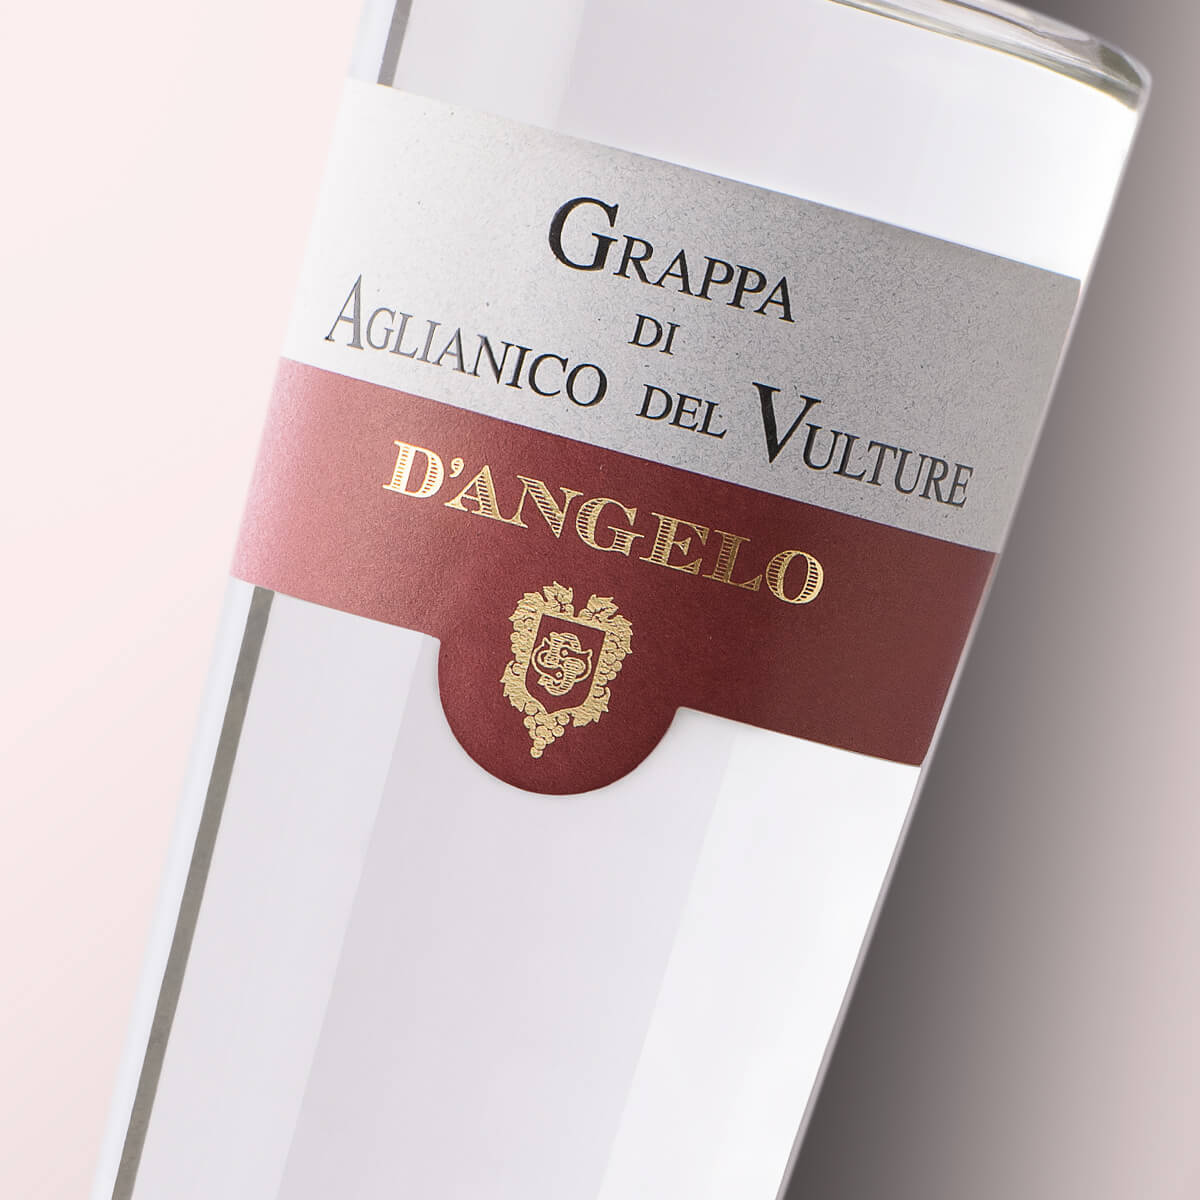 grappa di aglianico del vulture dangelo